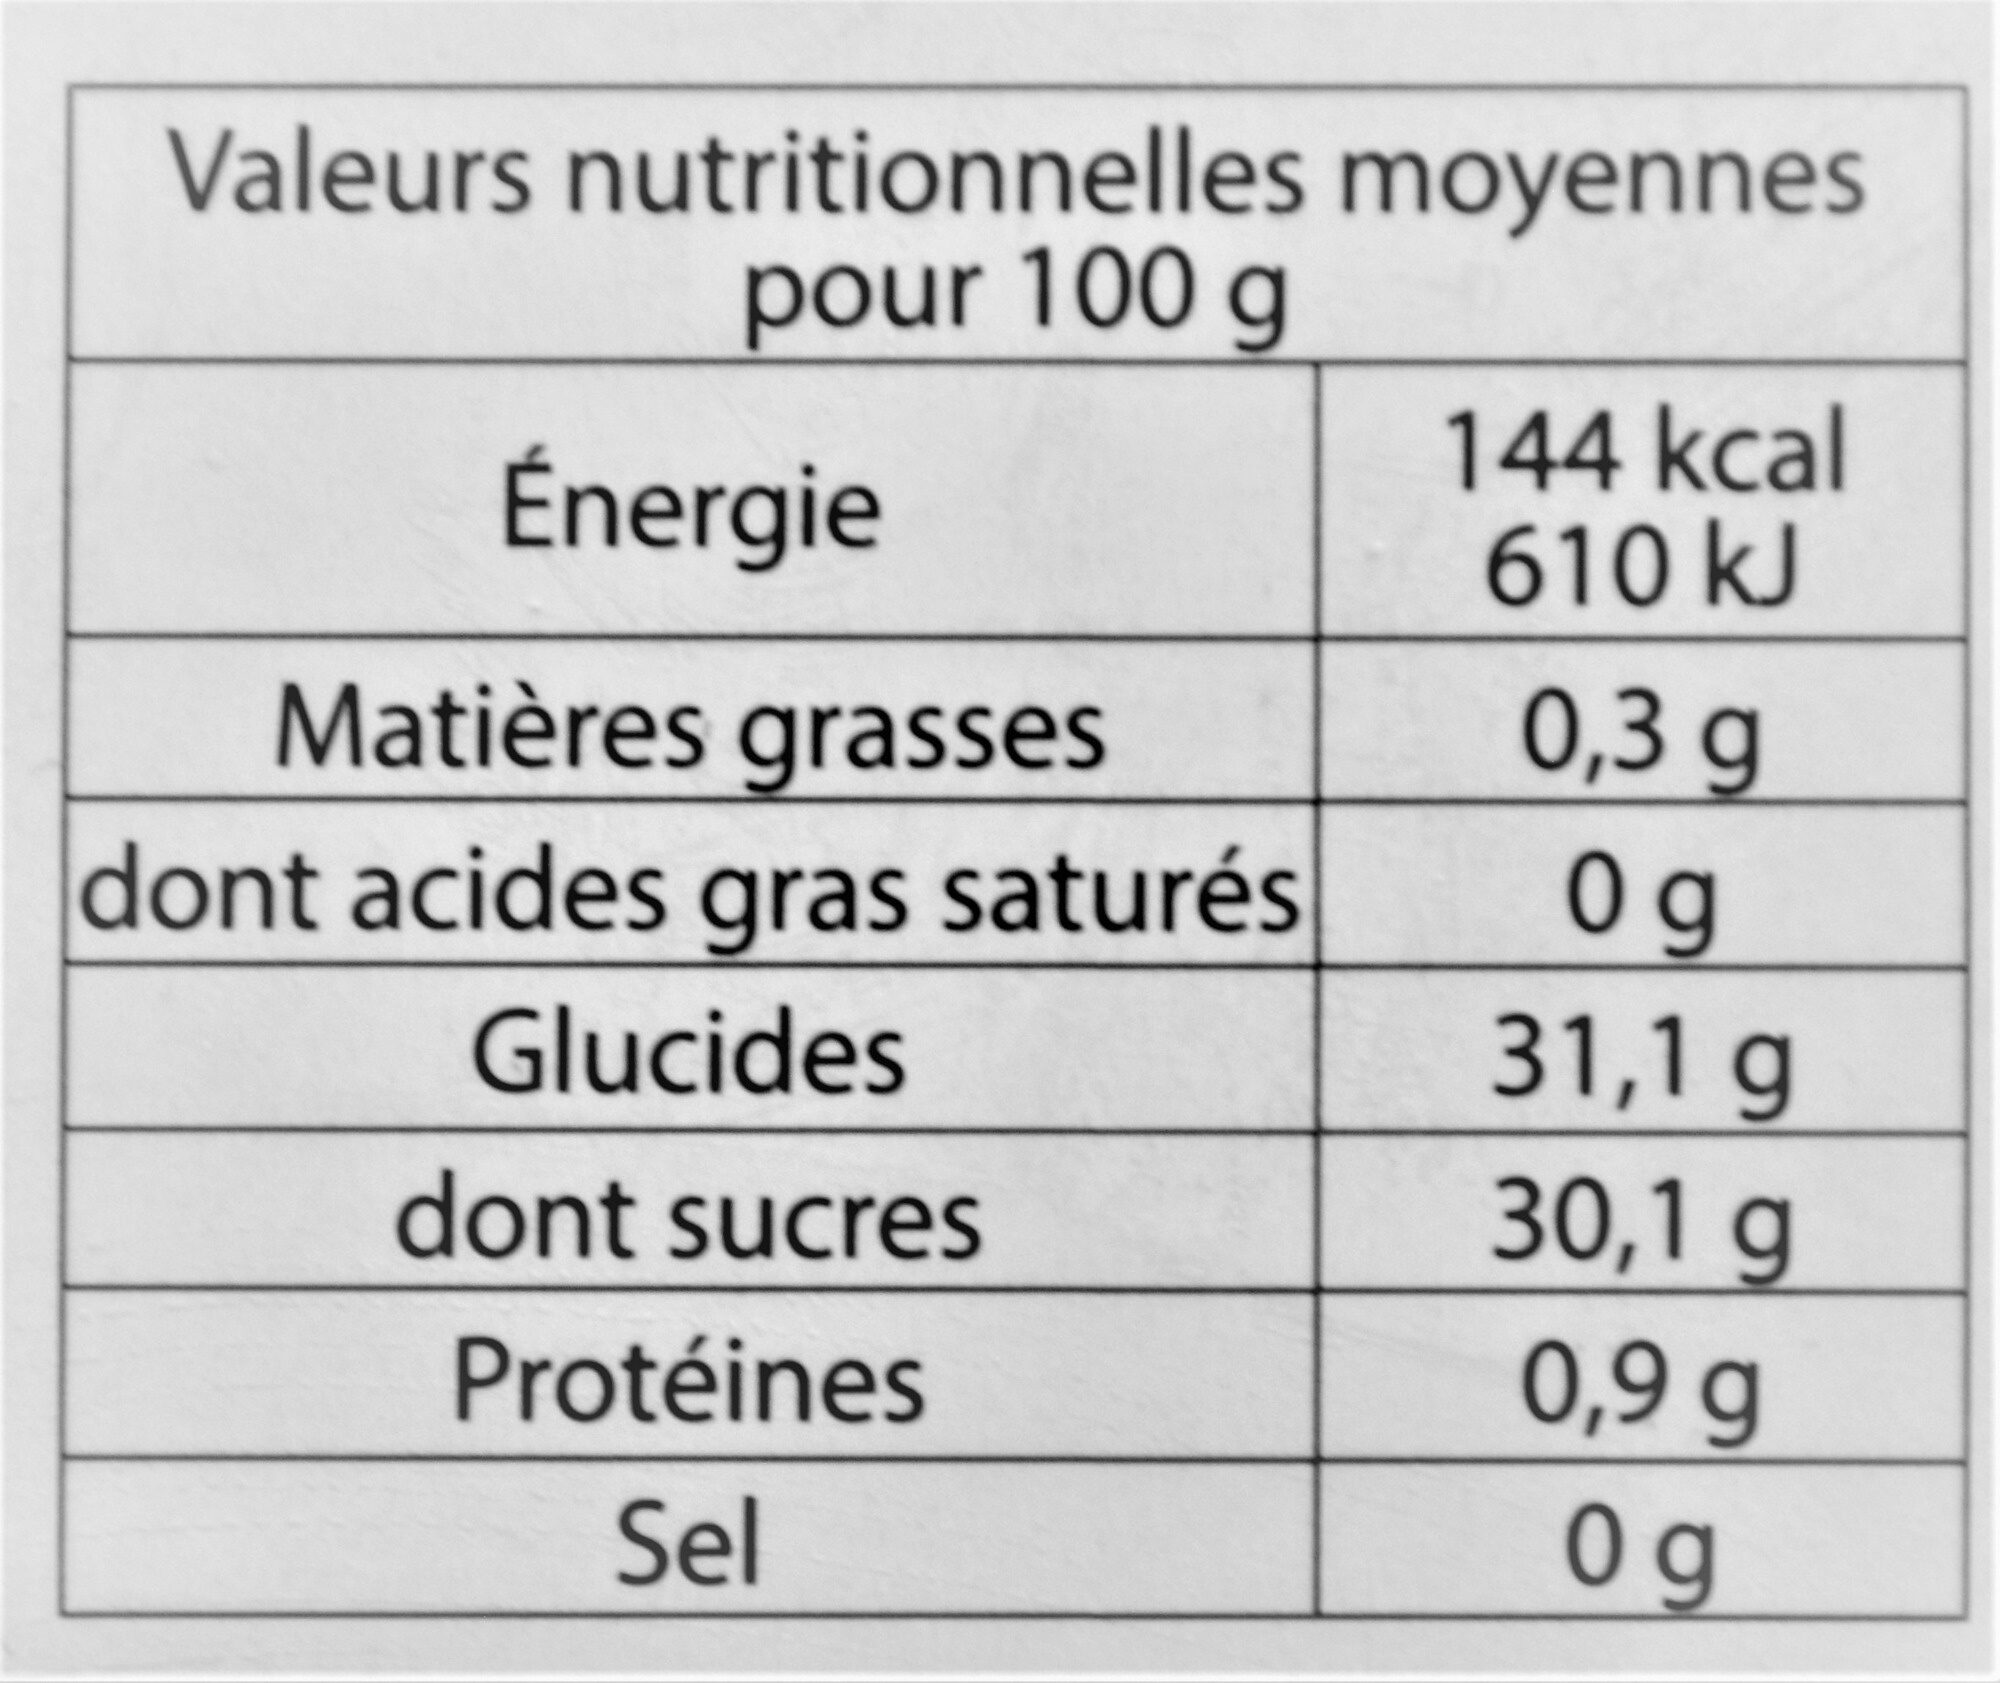 Sorbet plein fruit FRUIT DE LA PASSION, 41% de fruit - Nutrition facts